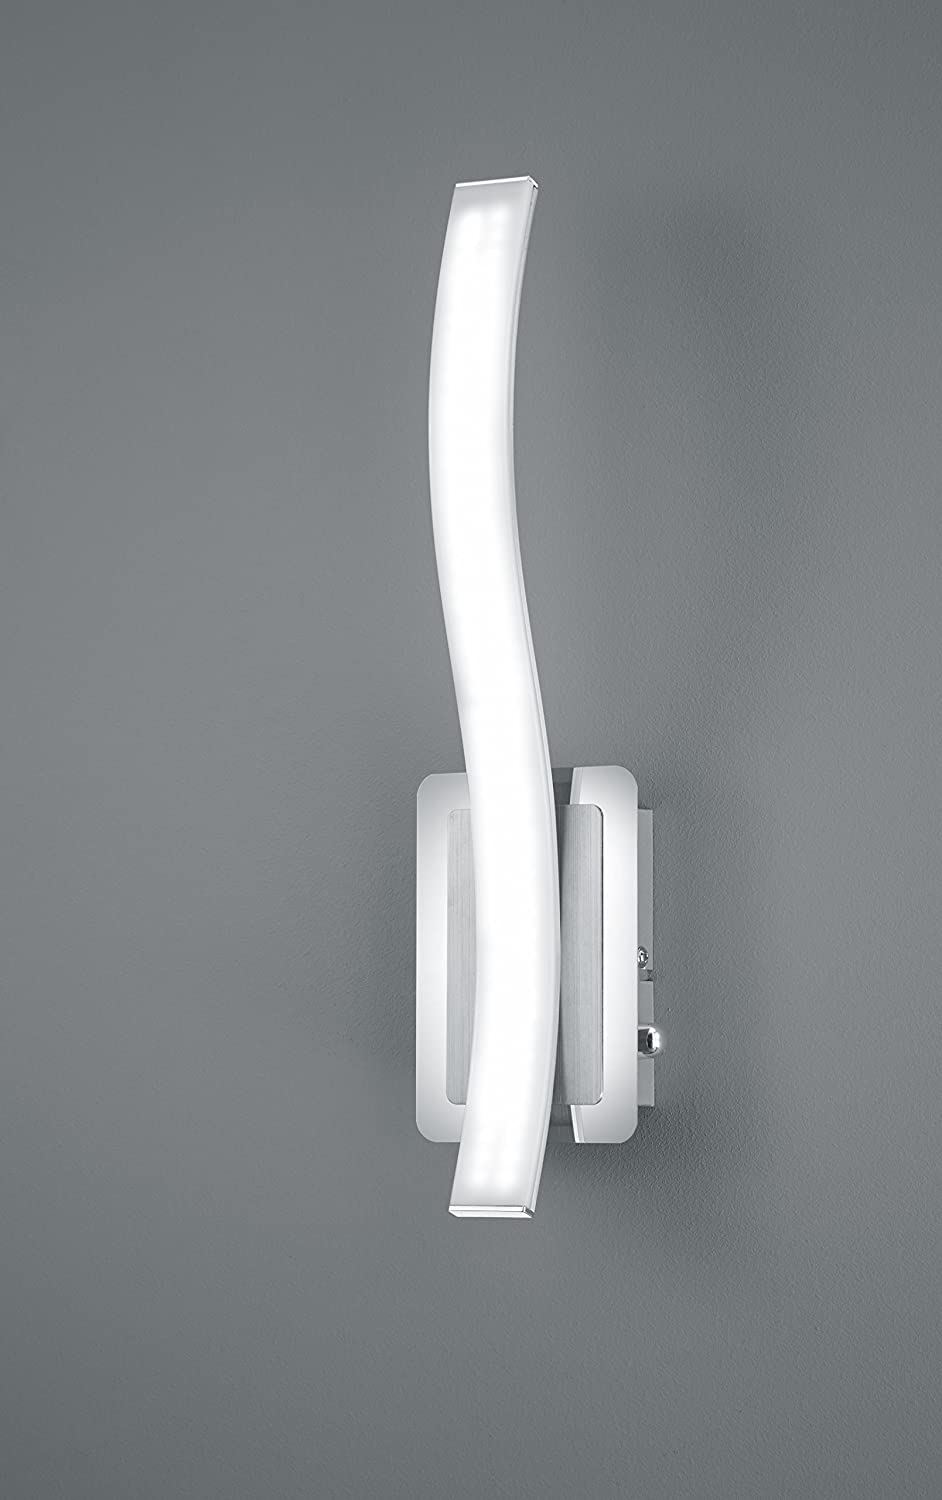 Trio Lighting Lmpara de pared, 10 W: Amazon.es: Iluminación